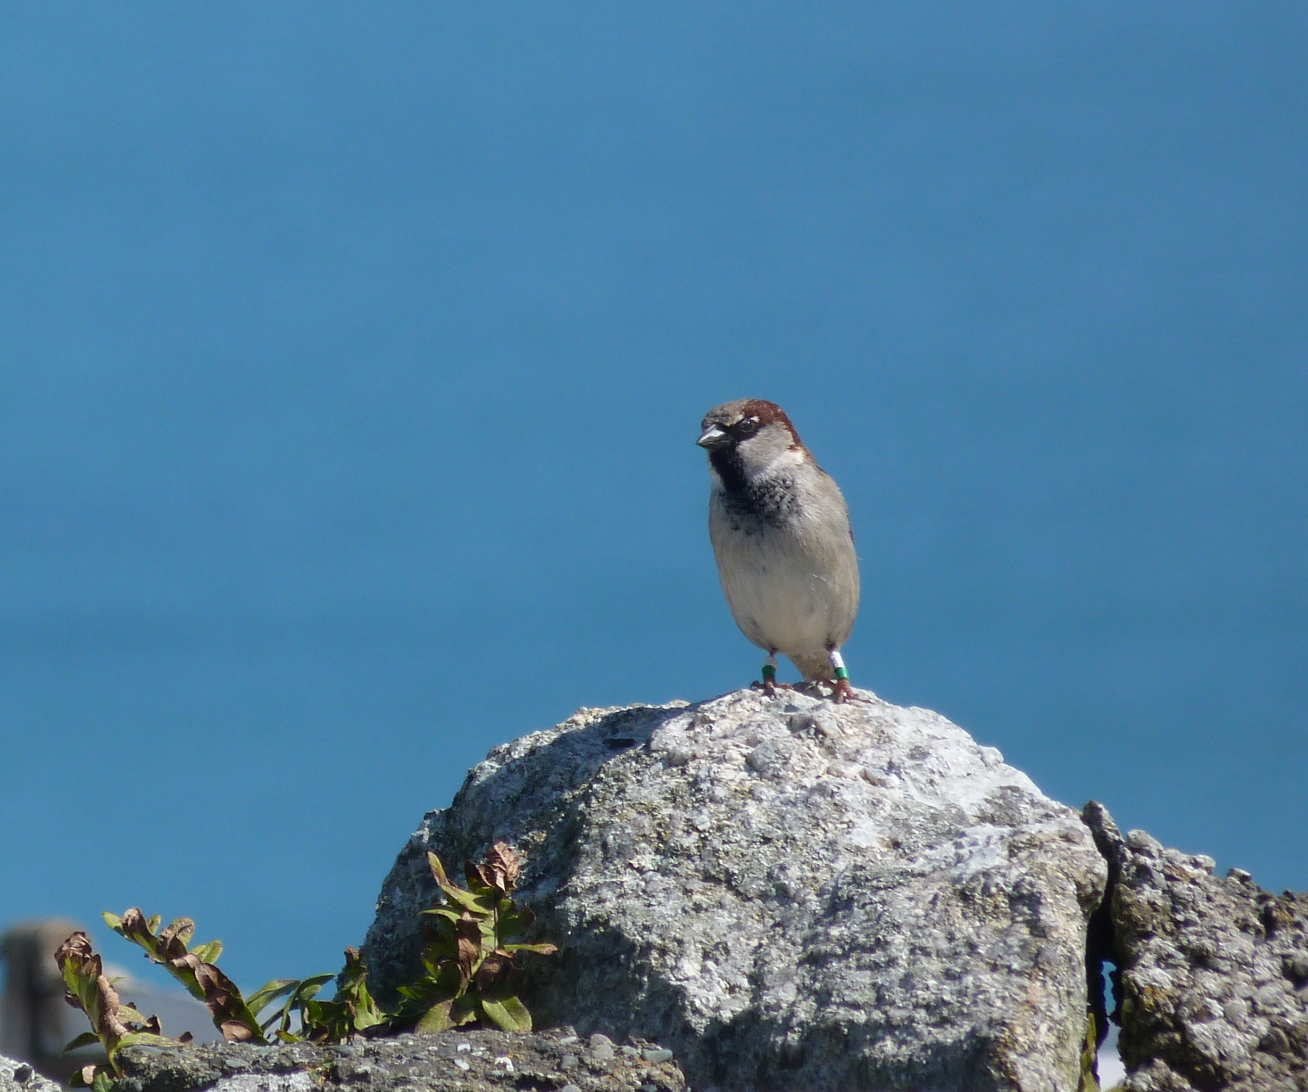 Sparrow on a rock